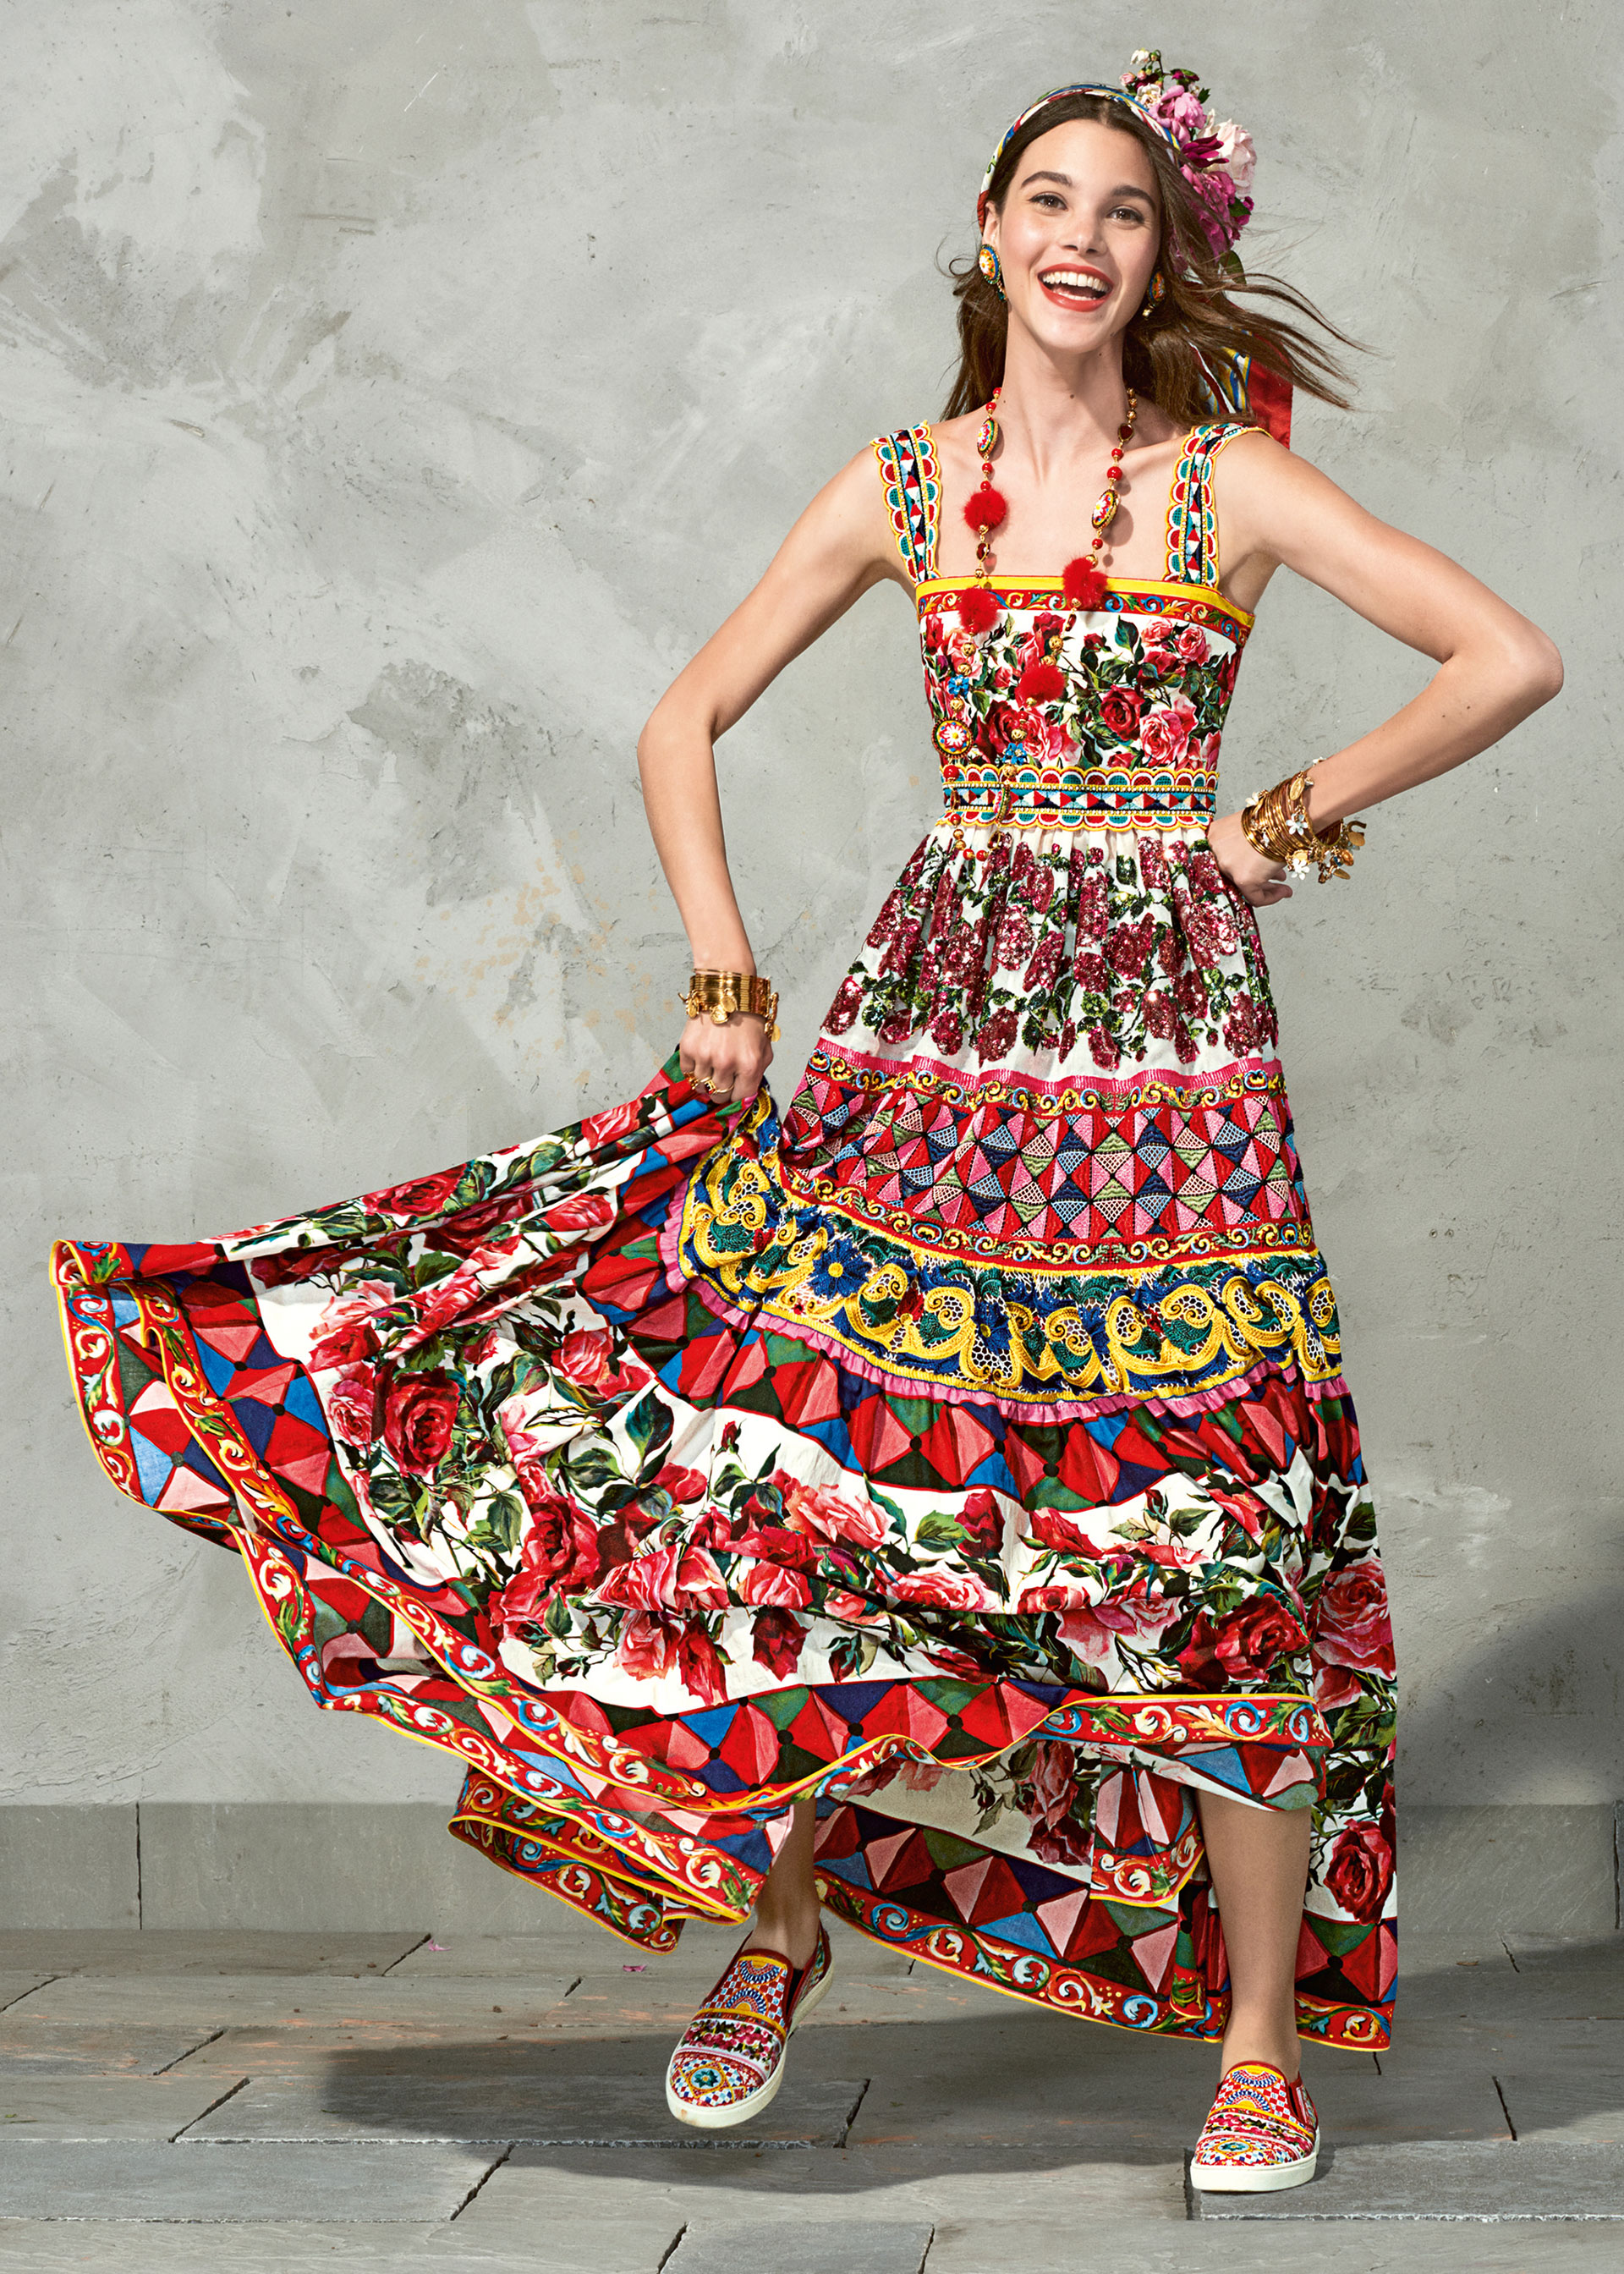 dolce and gabbana summer 2017 woman collection 112 - Dolce & Gabbana/Spring Summer 2017 Collection/ Mambo